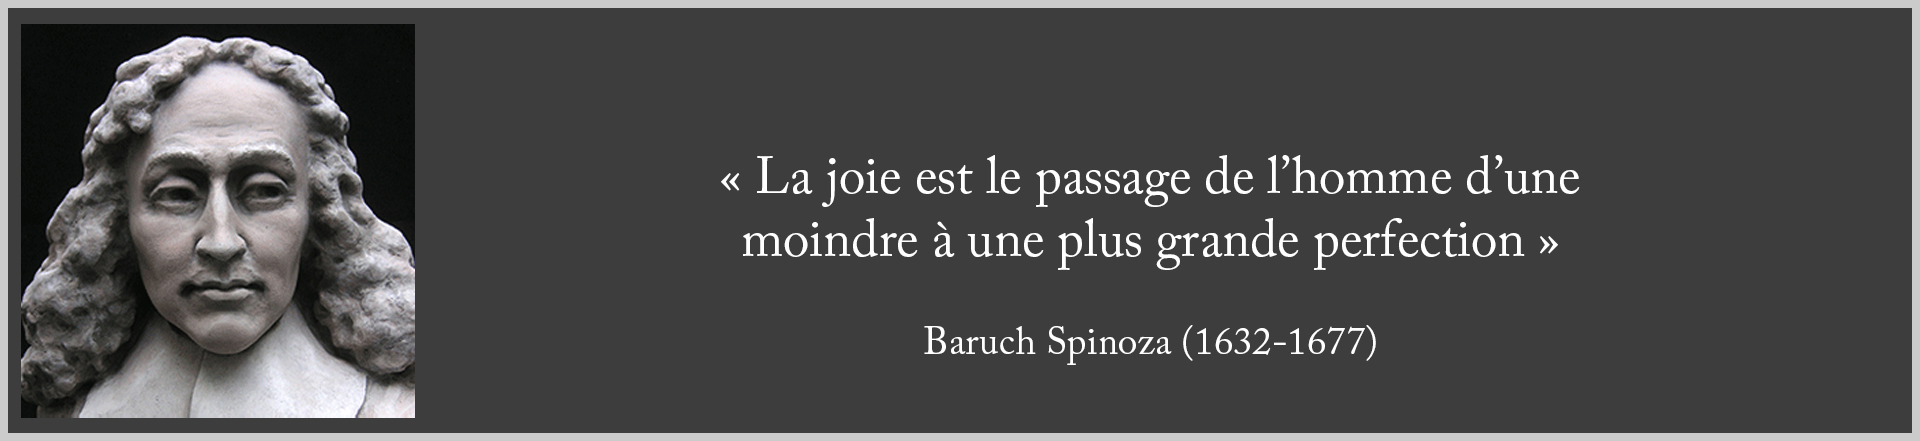 Baruch Spinoza dpurb site web